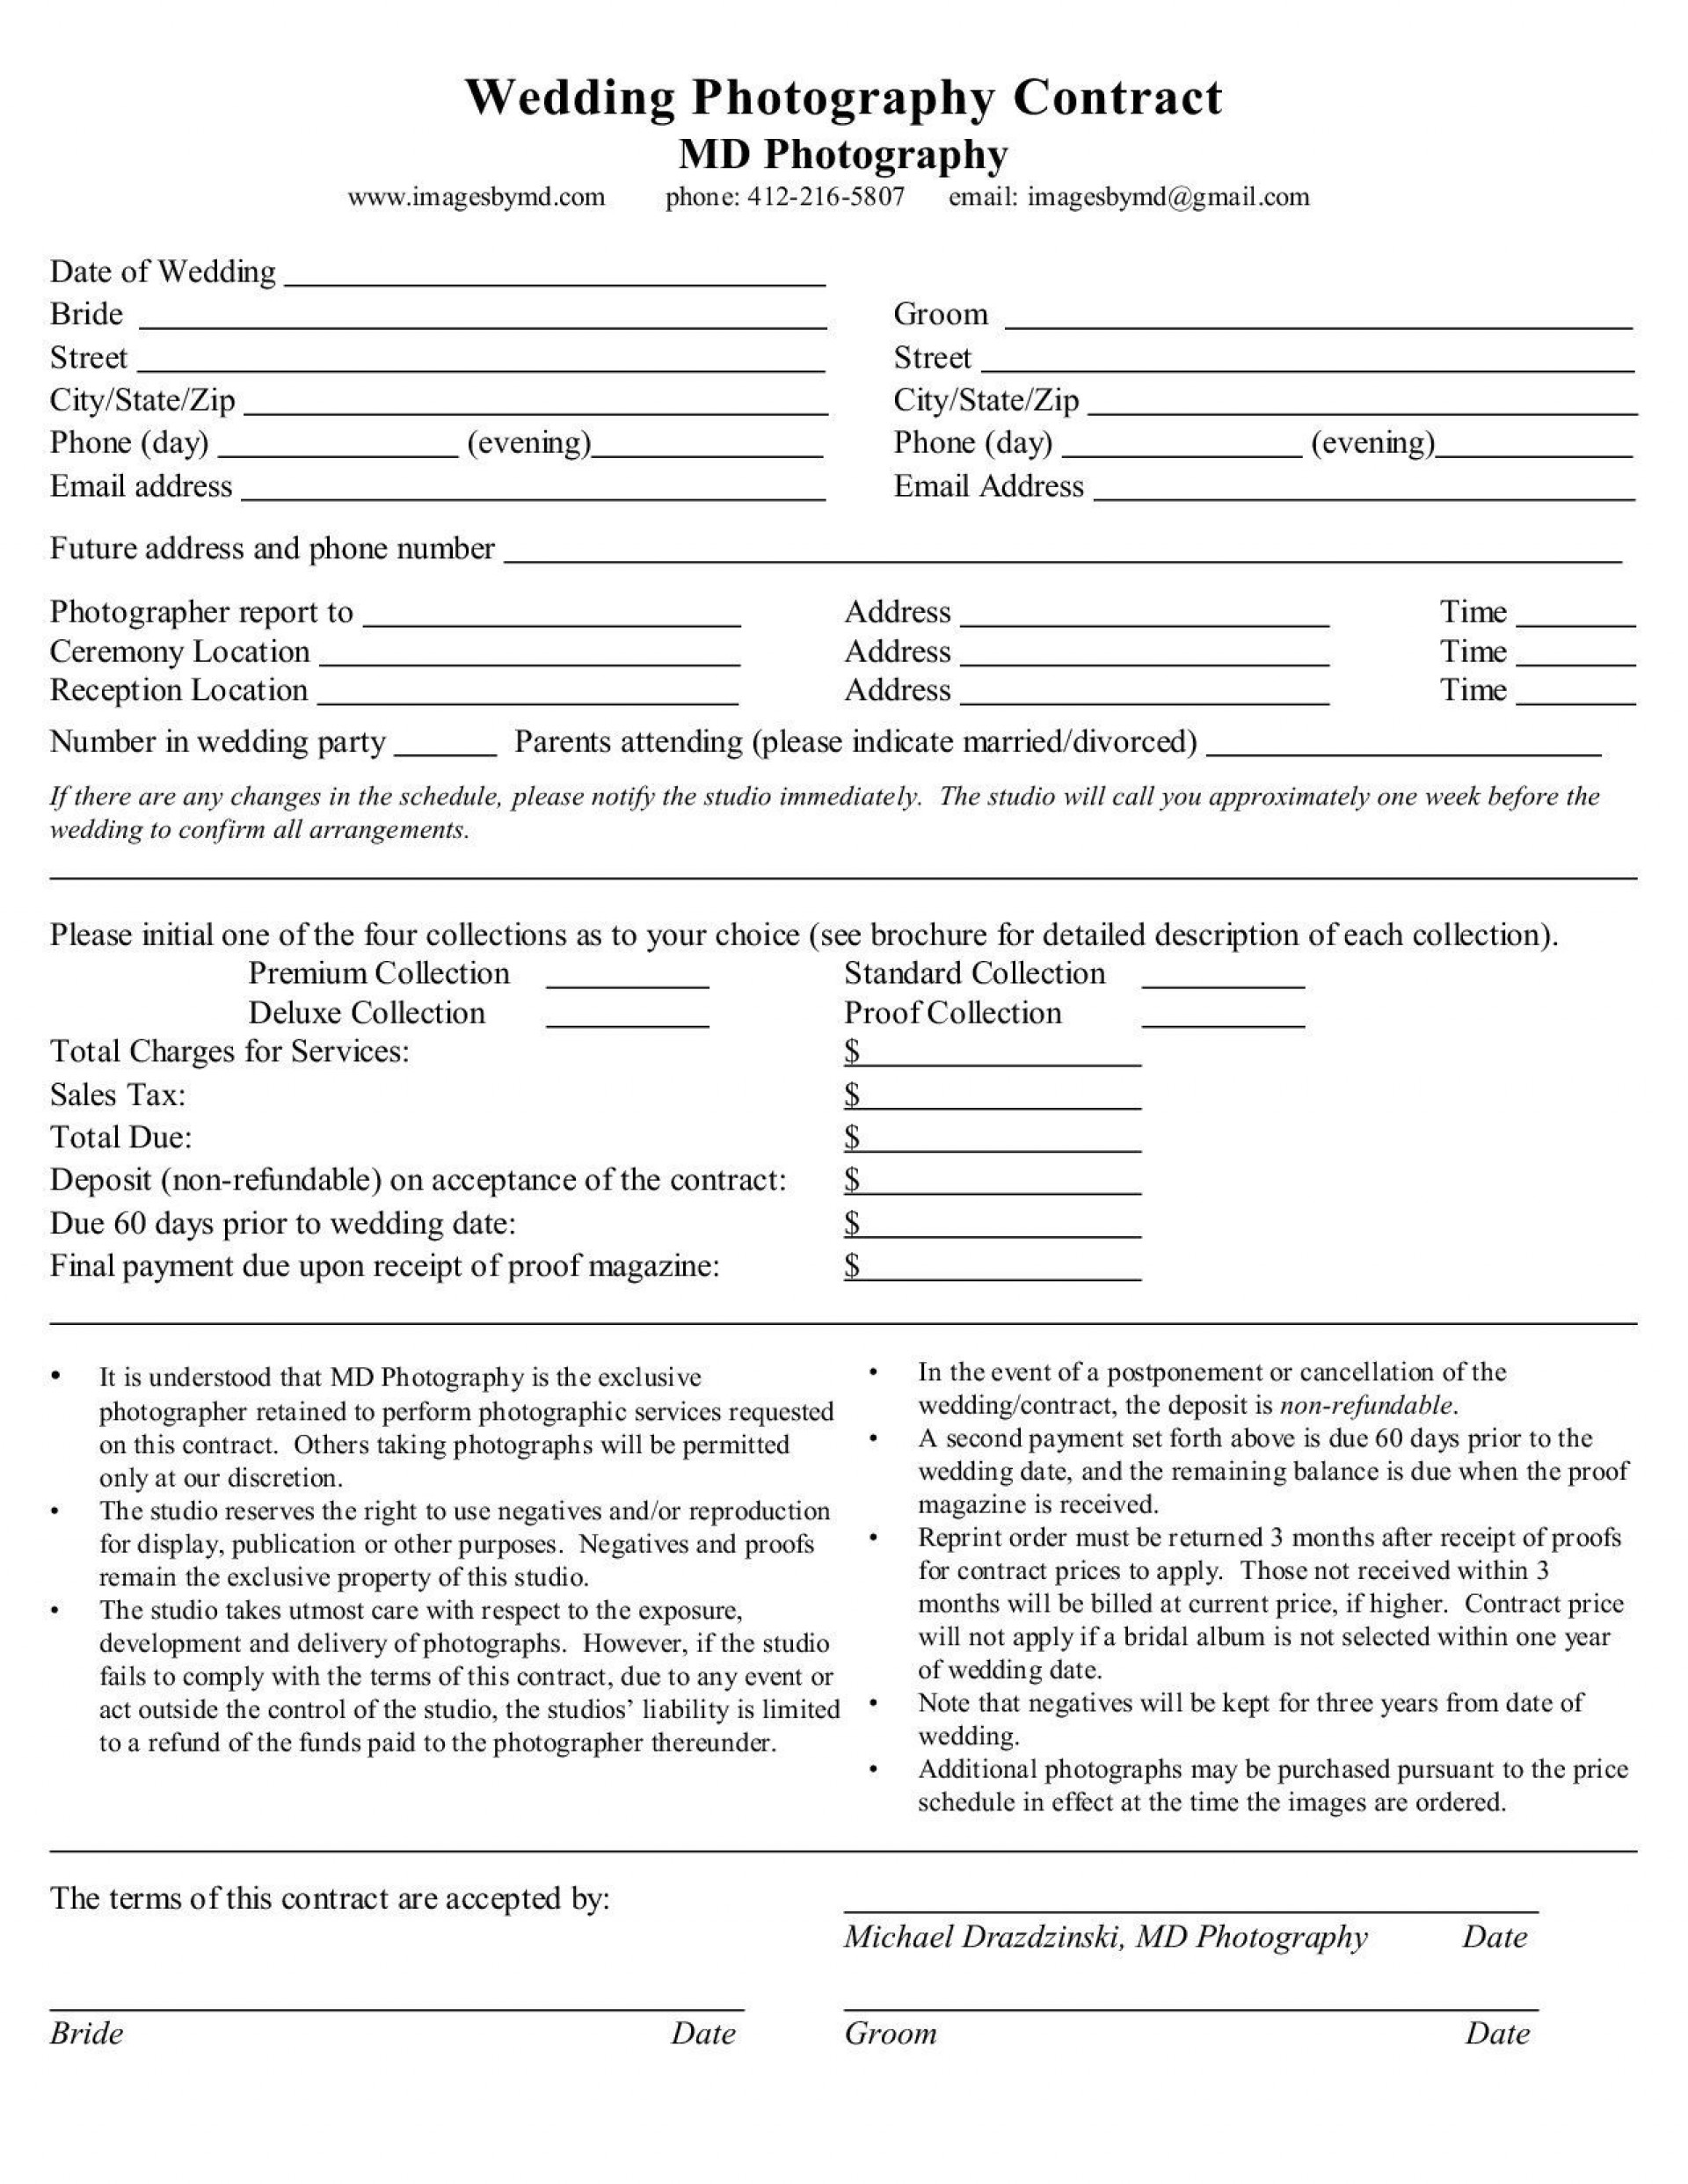 008 Striking Wedding Photography Contract Template Canada High Def 1920